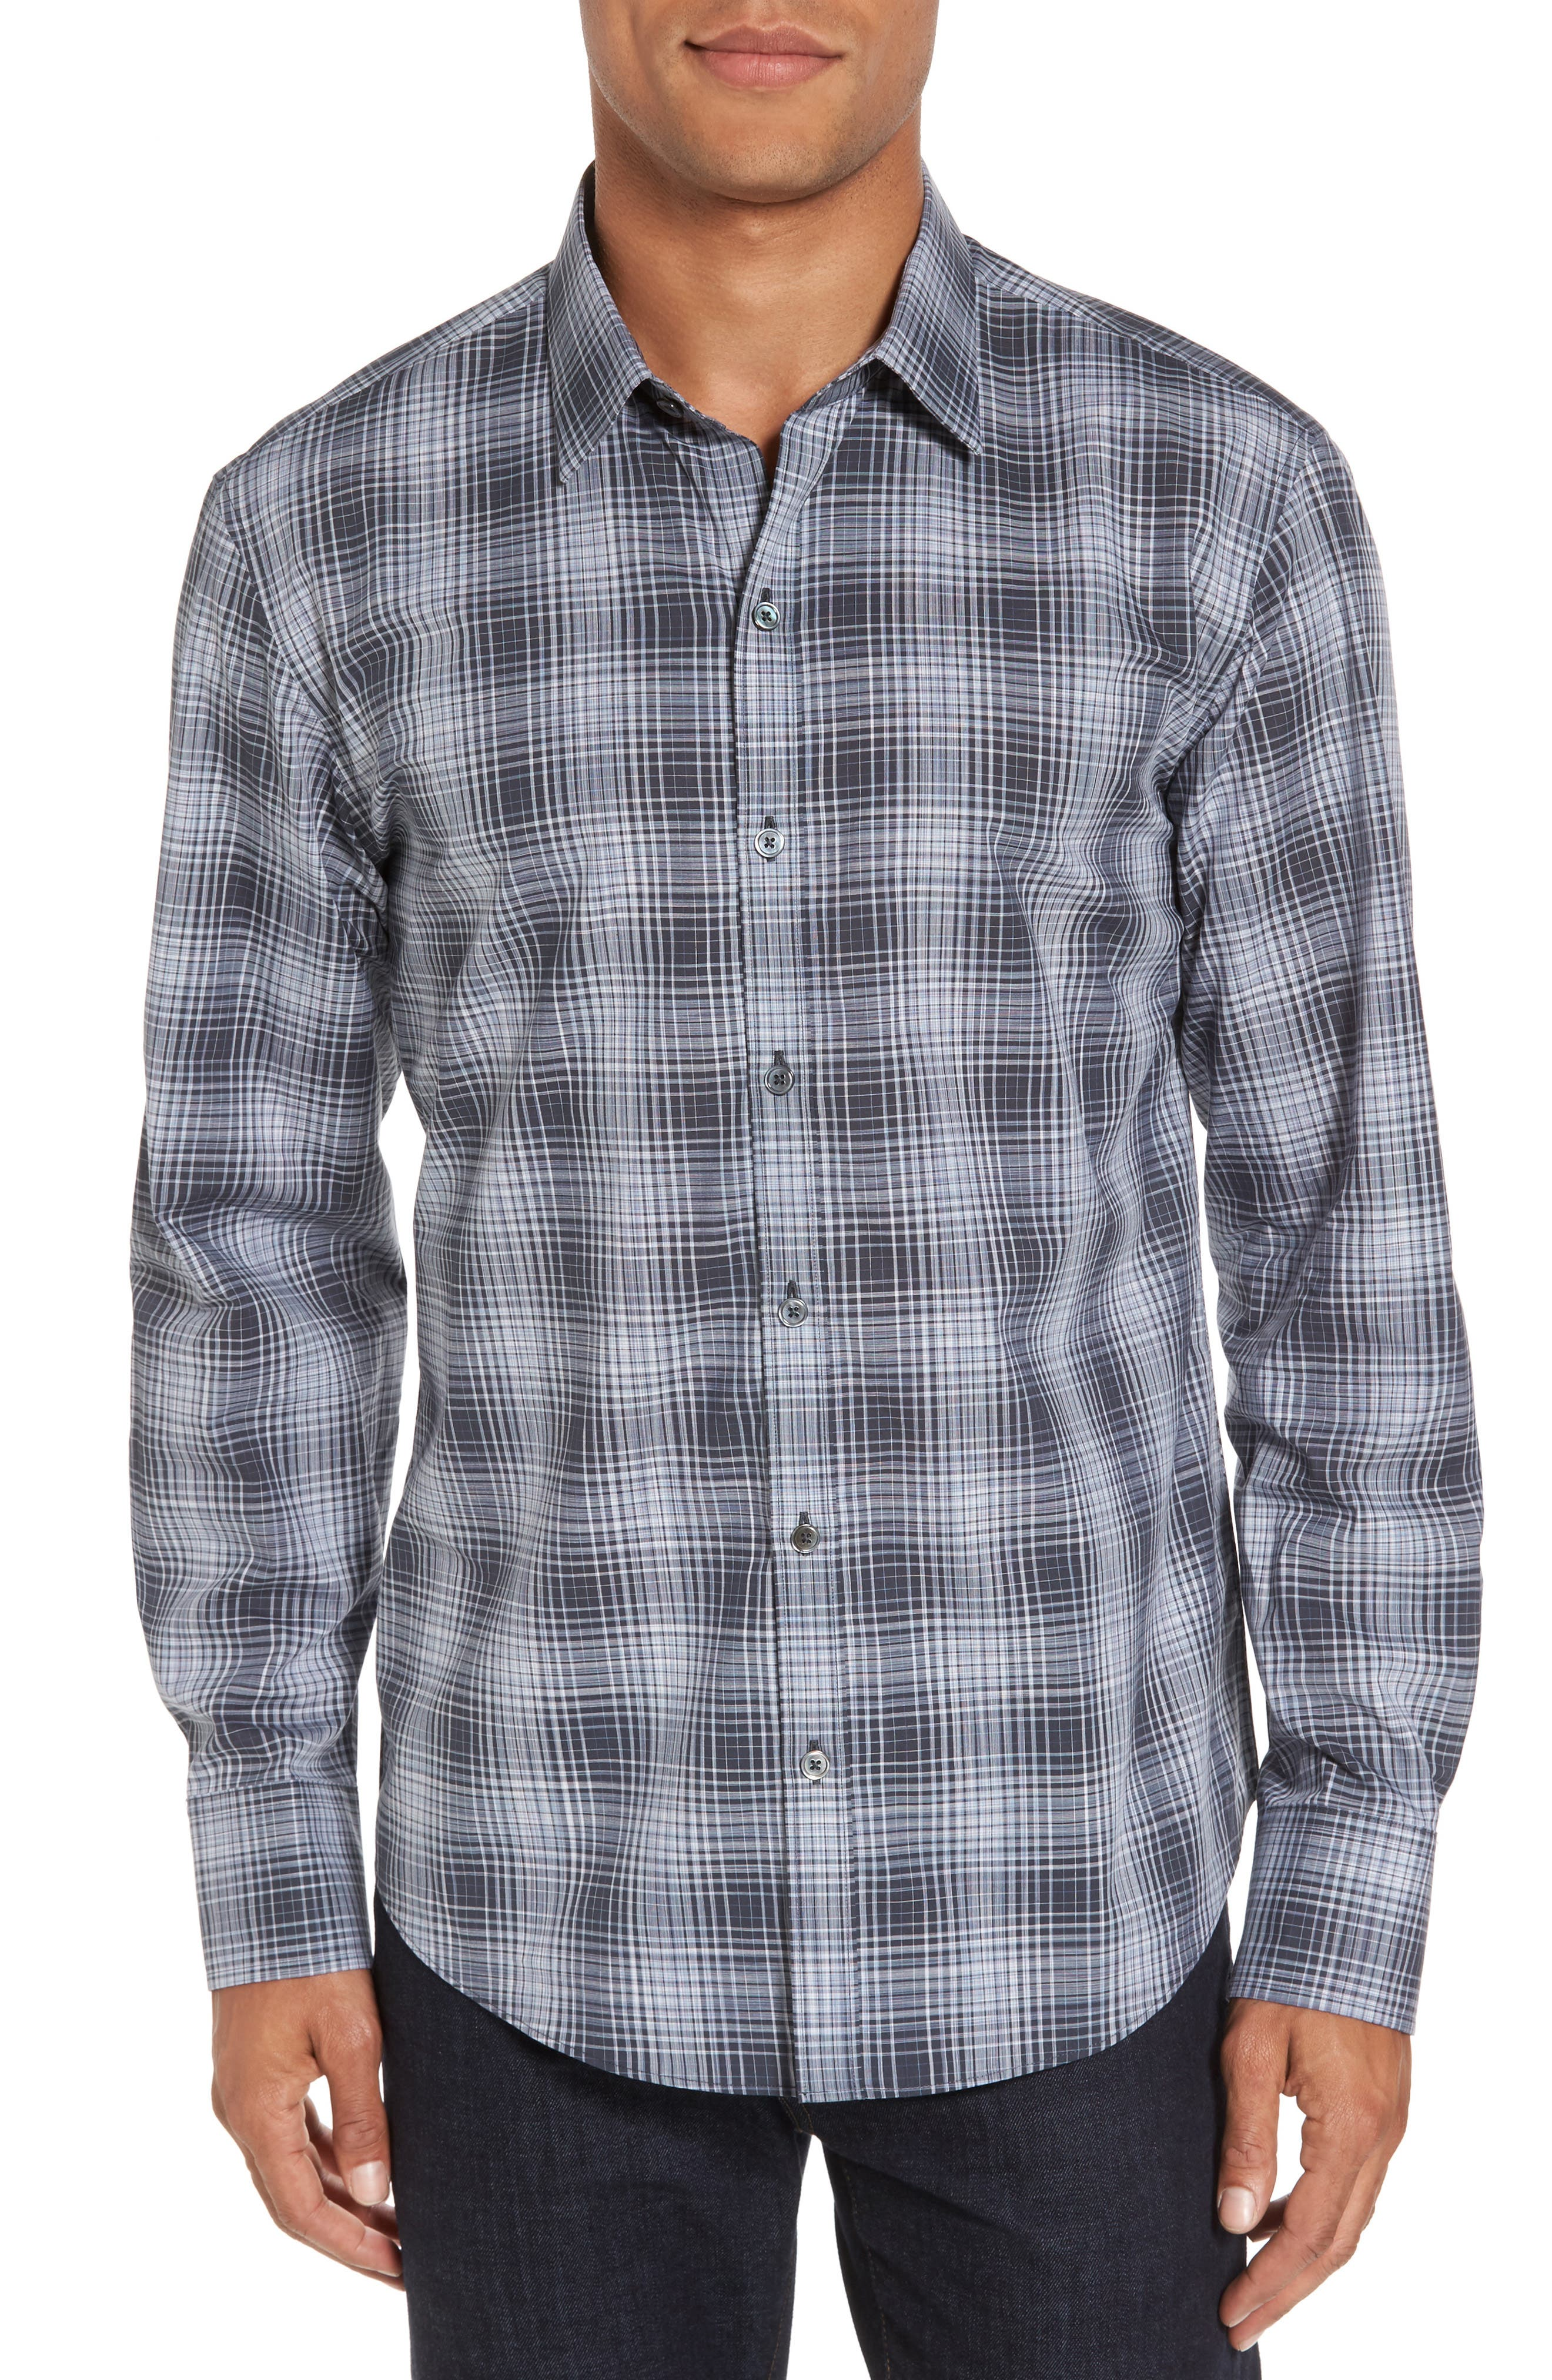 Zander Check Sport Shirt,                         Main,                         color, 021